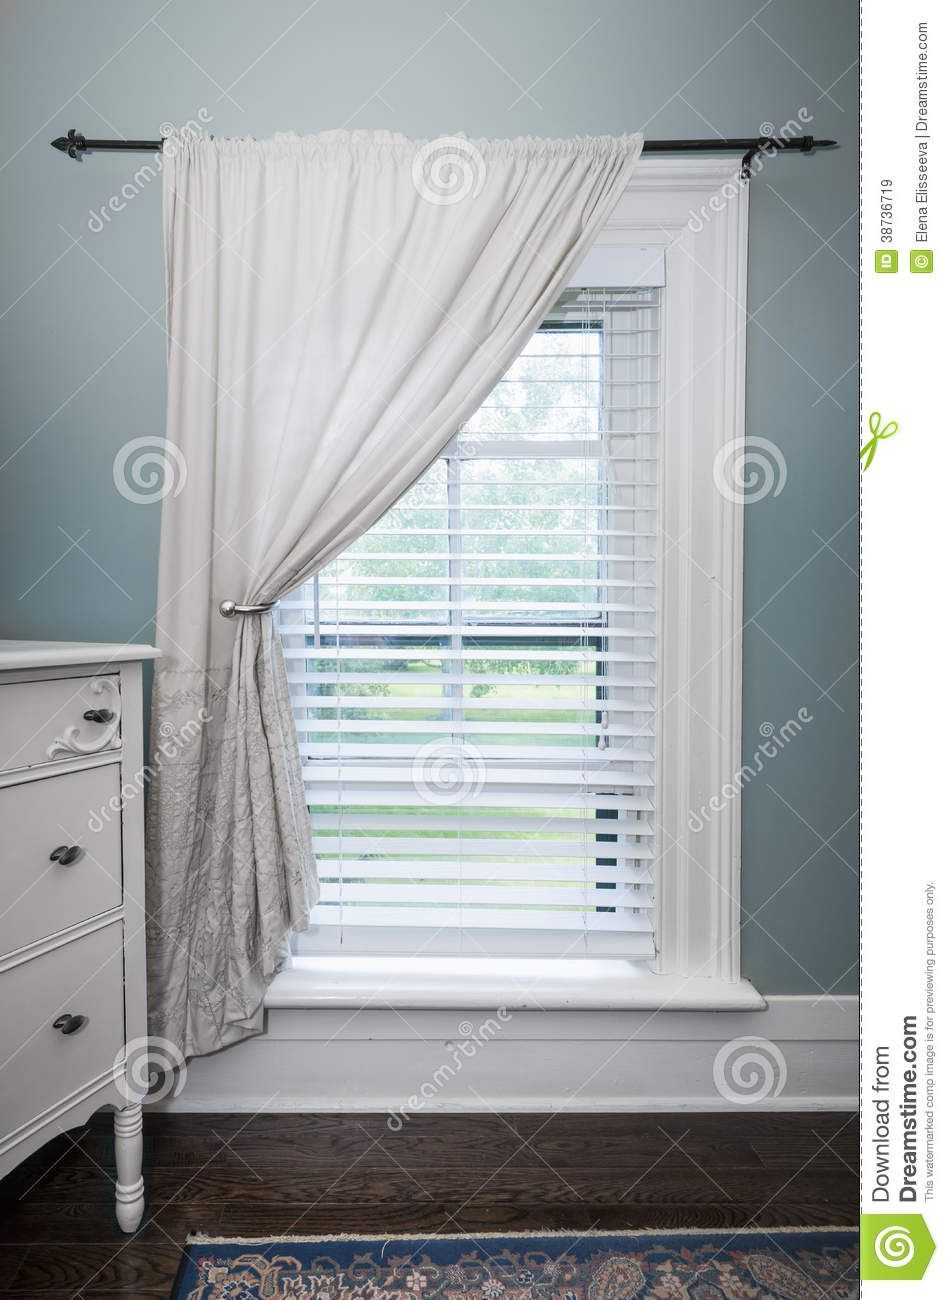 Windows with blinds and curtains google search verticalblindsarchitecture